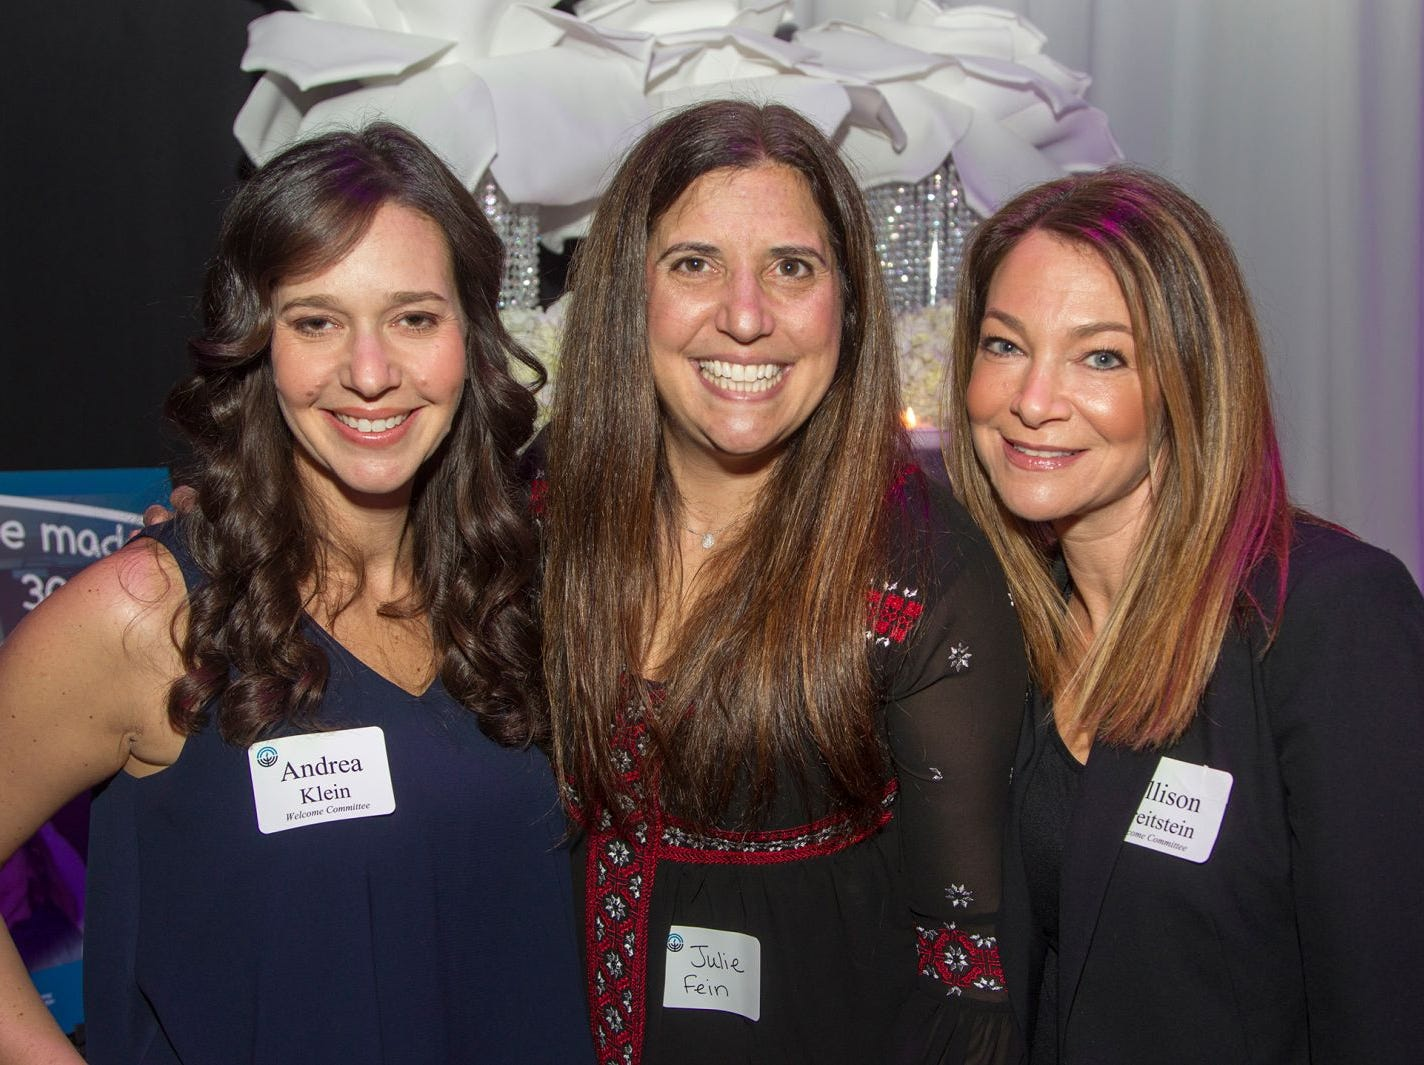 Andrea Klein, Juli Fein, Allison Breitstein. Jewish Federation of Northern New Jersey held its first Girl's Night Out dance party at Space in Englewood. 01/24/2019